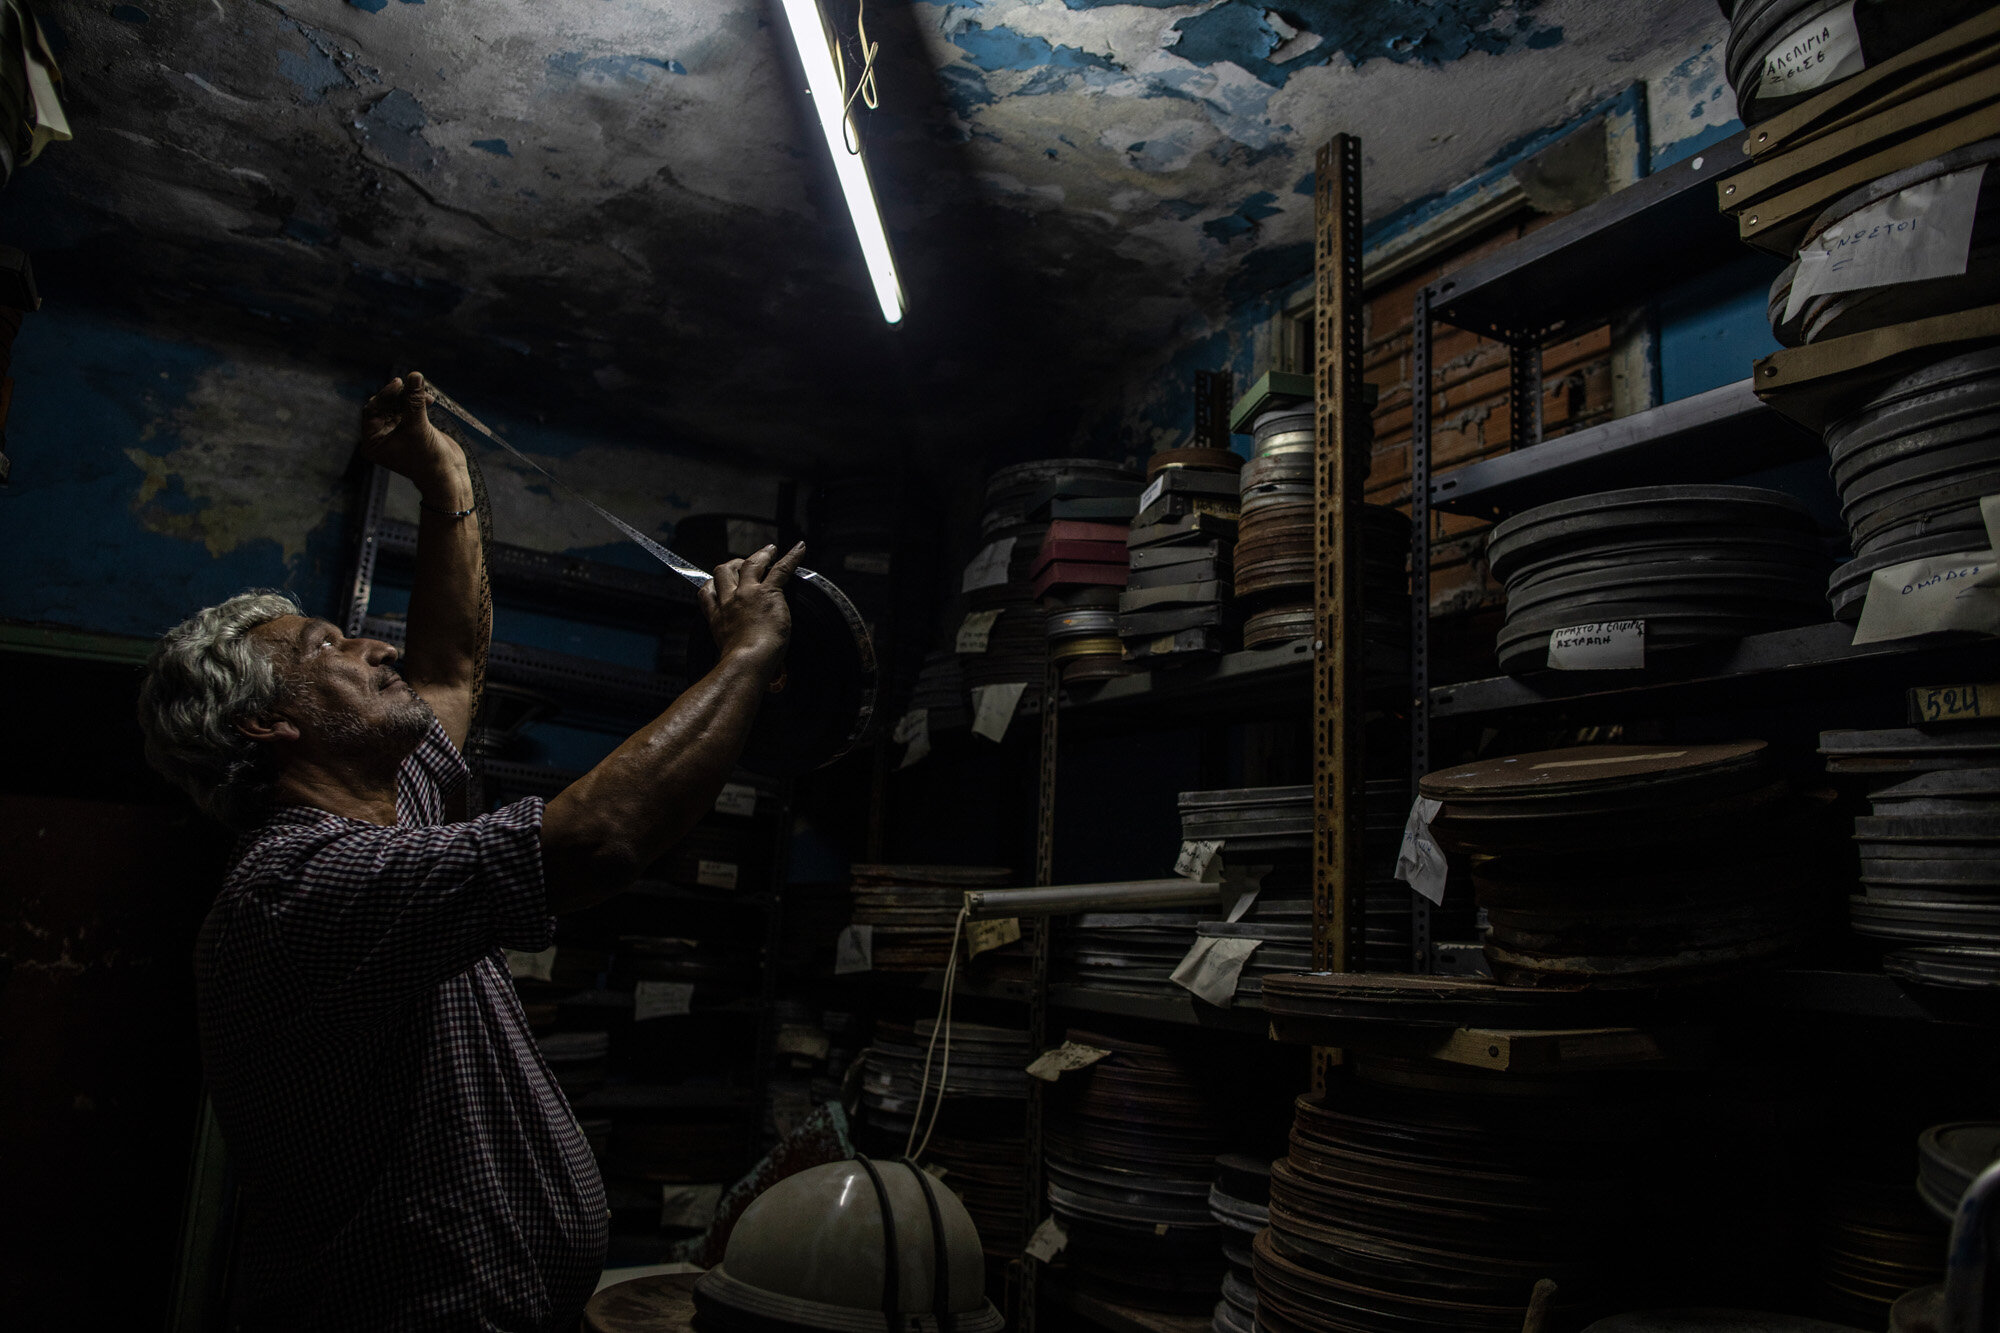 Projector operator Pavlos Lepeniotis checks the quality of movie film inside a warehouse at the Zephyros open-air cinema, which specializes in films from past decades, in Ano Petralona, central Athens, on June 3, 2020. Lepeniotis has worked in movie theaters since age 12. (AP Photo/Petros Giannakouris)